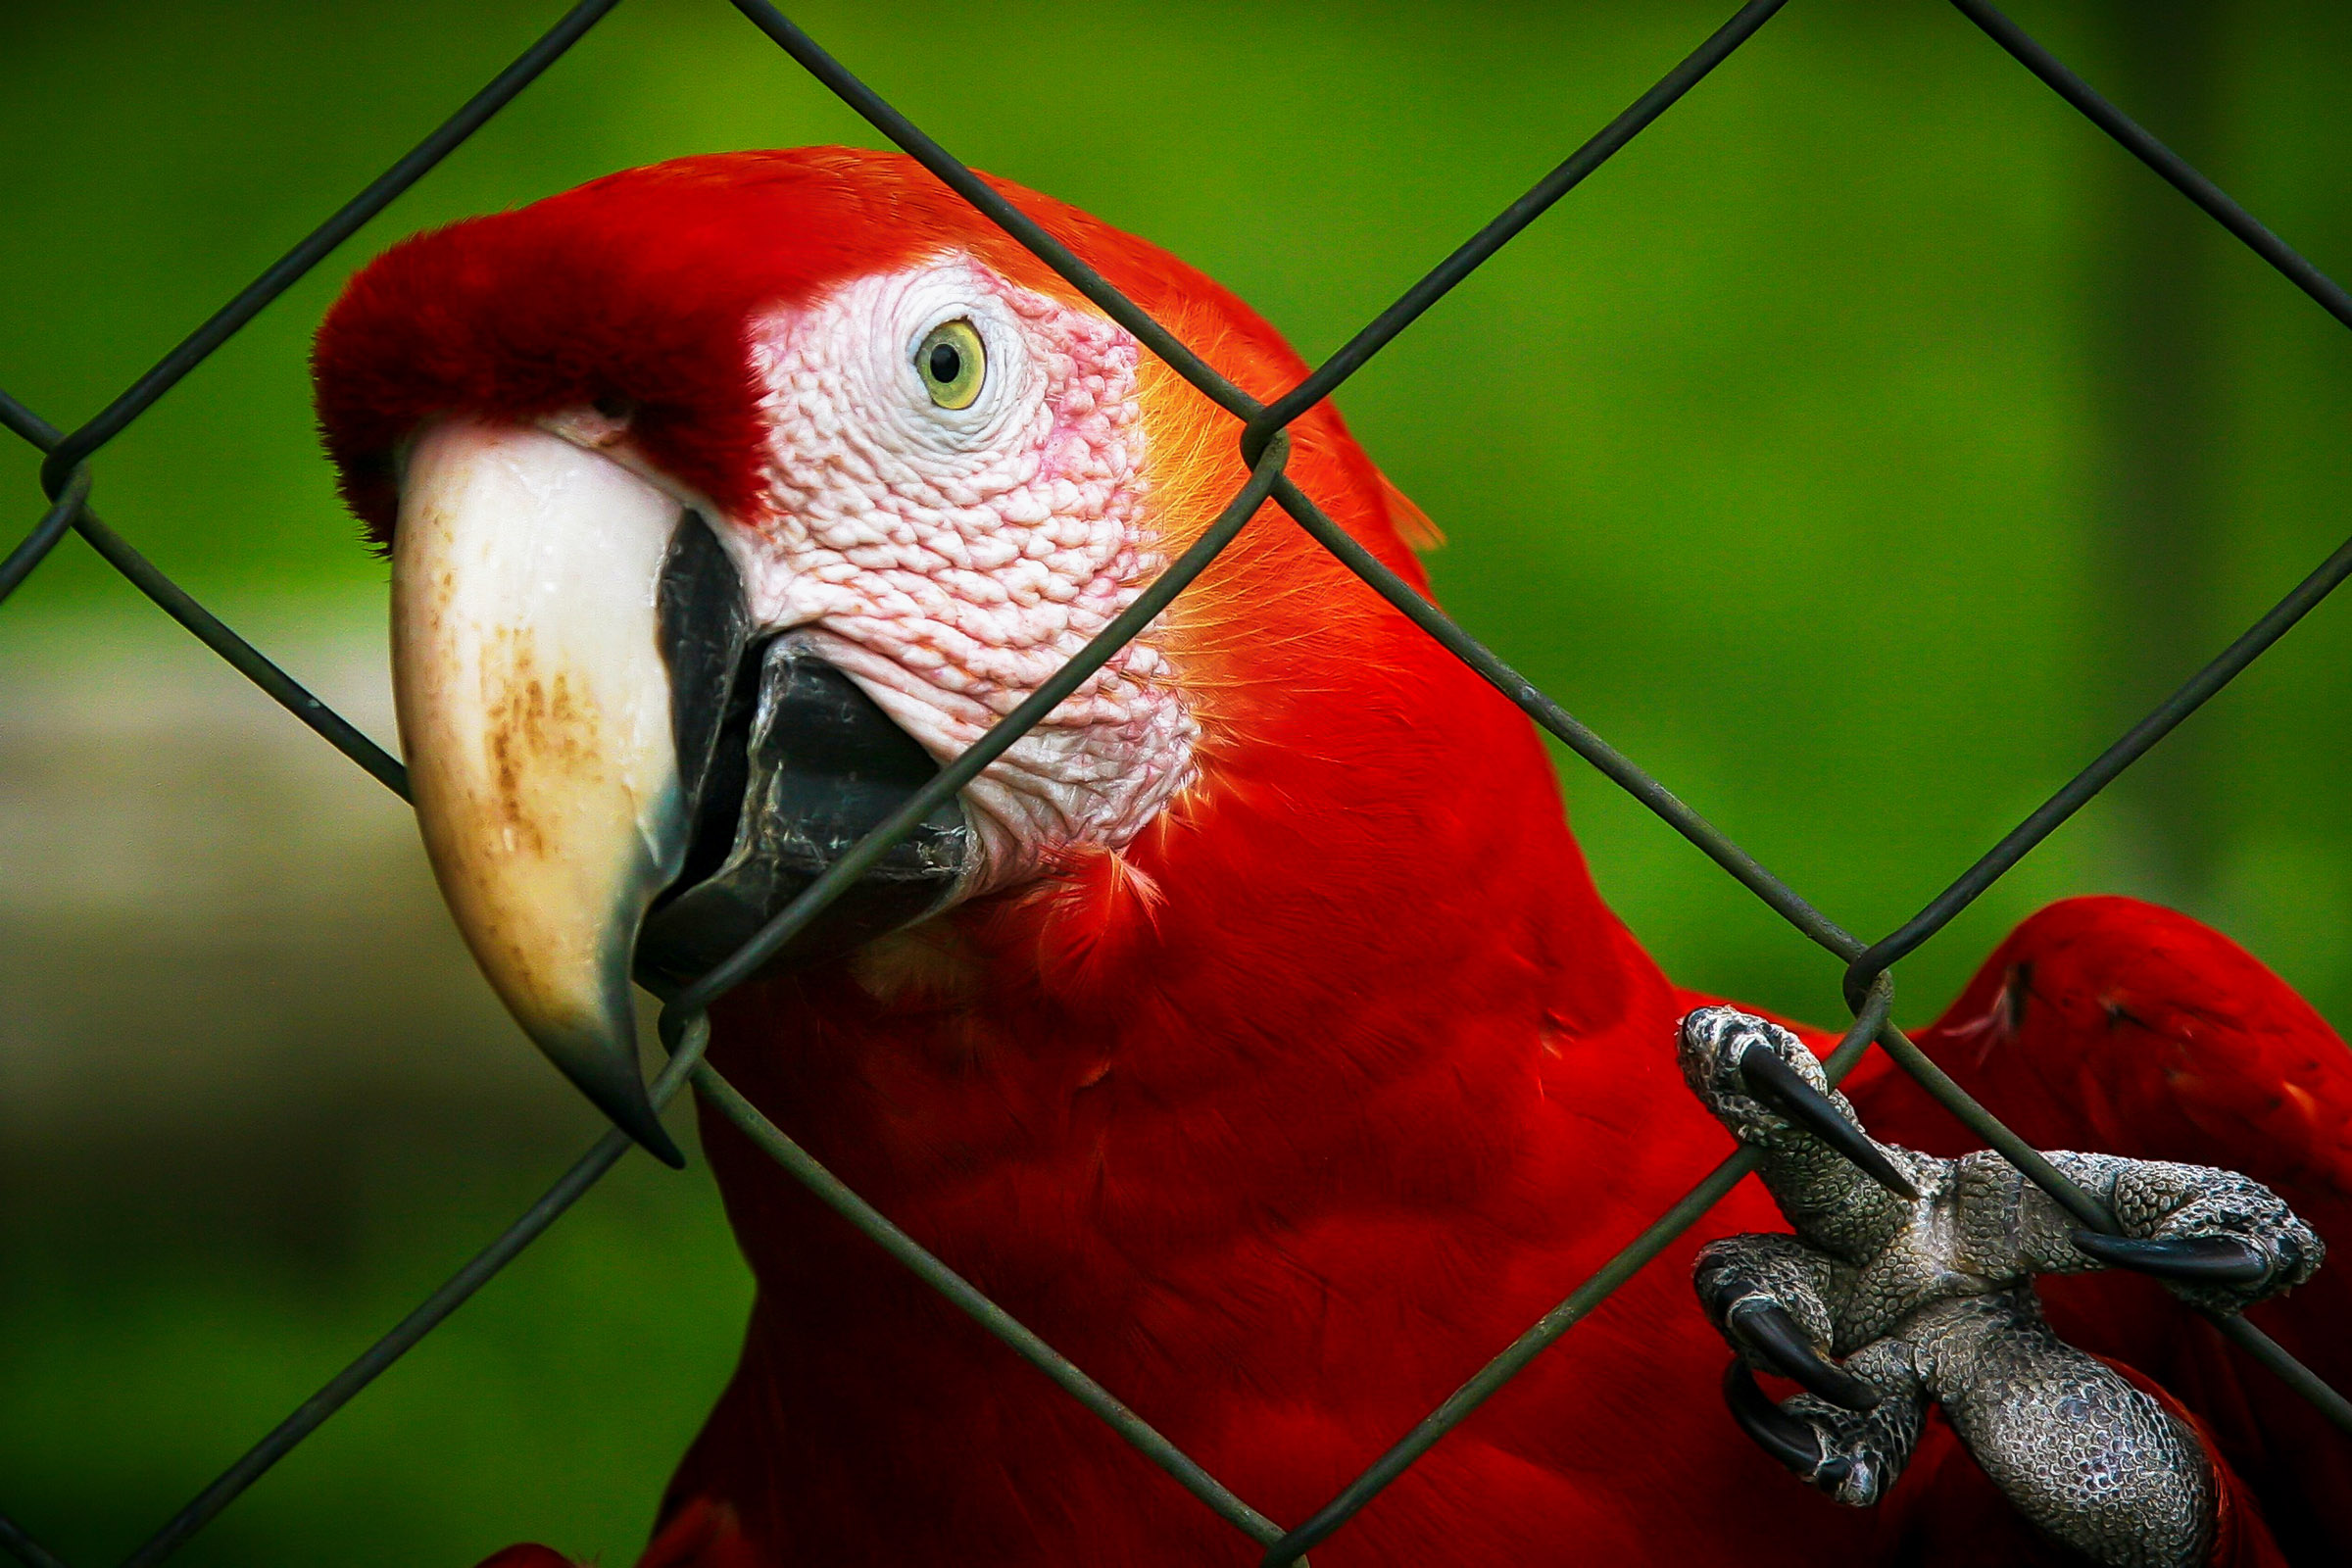 Cloesup parrot on fence